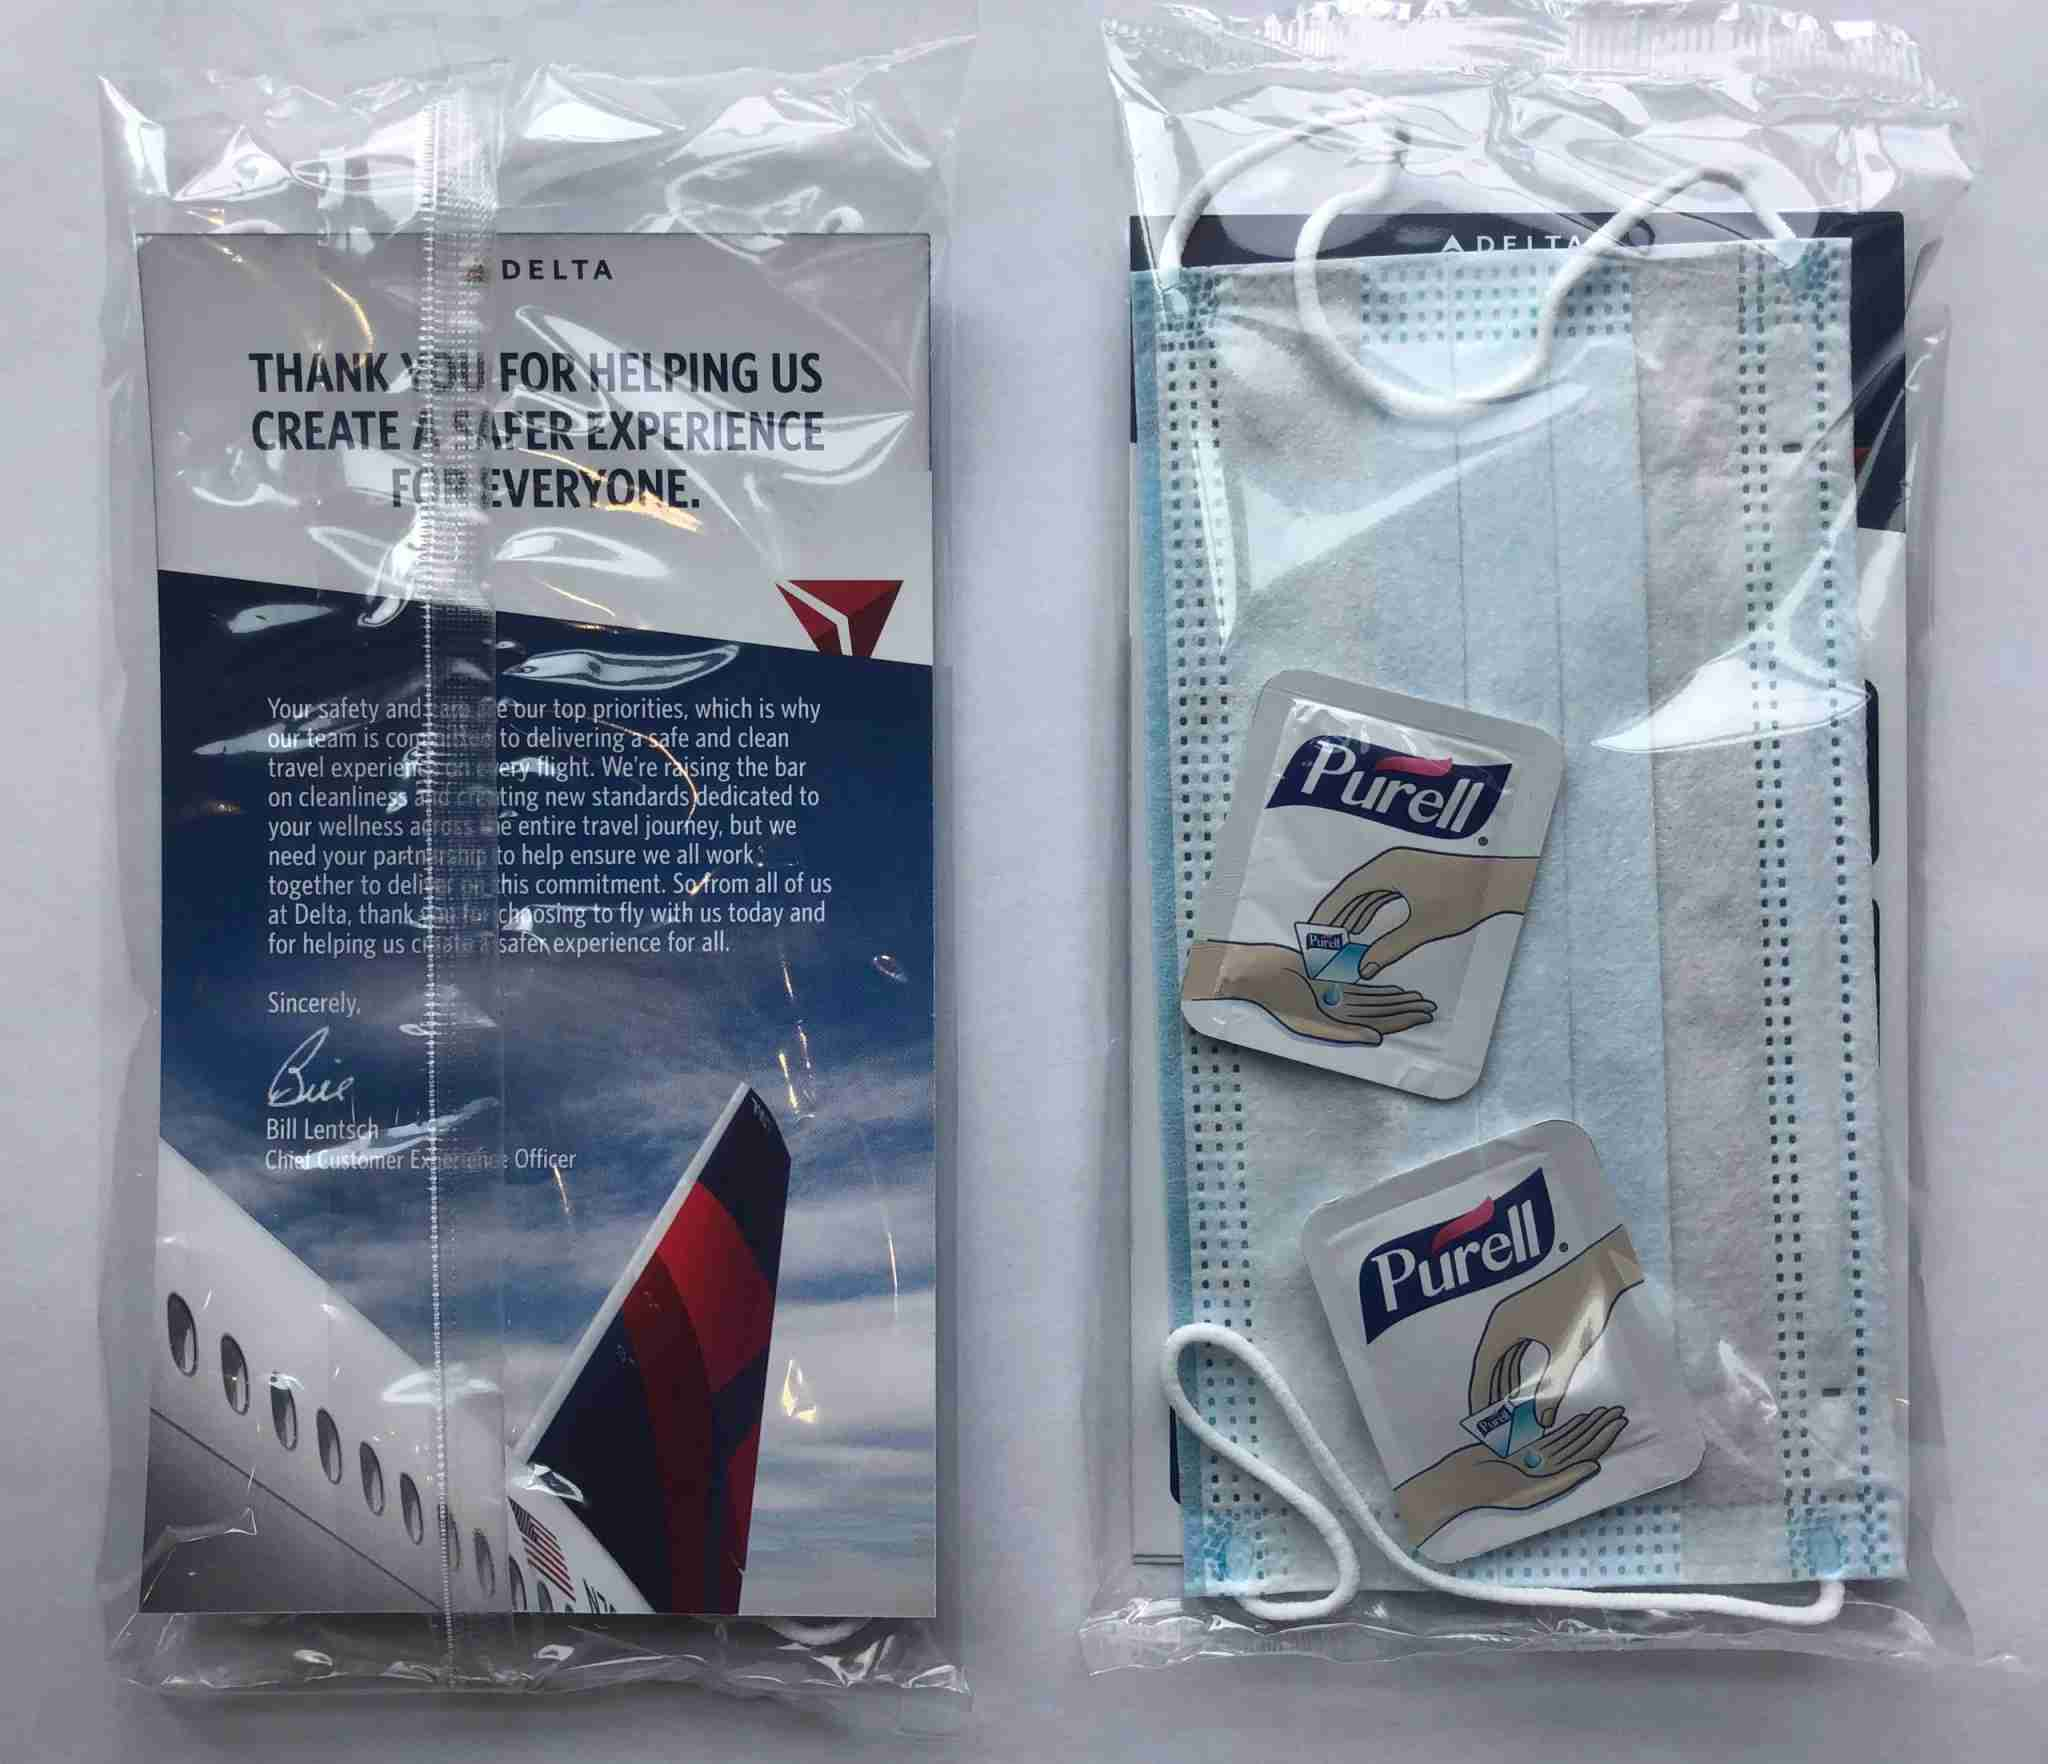 Delta clean kit. (Photo courtesy of Delta Air Lines)